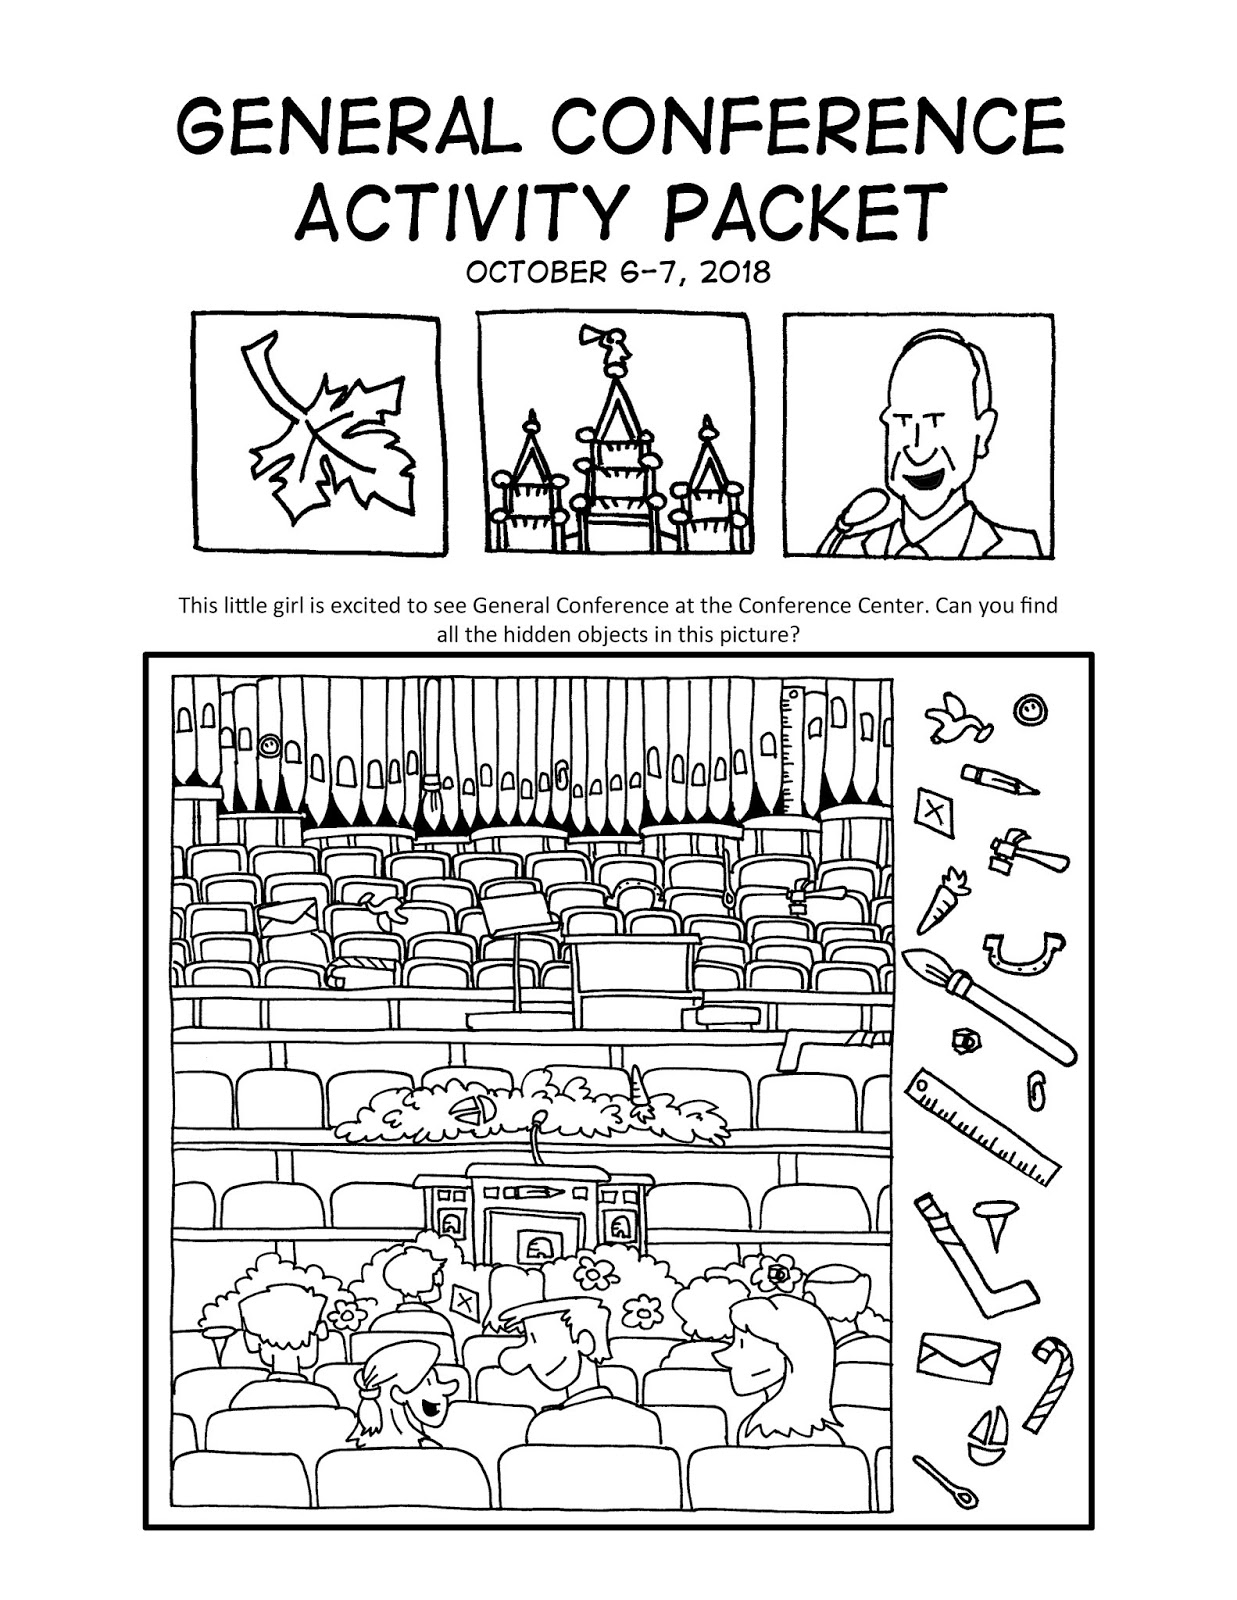 Ward Cartoonist Your October 2018 General Conference Activity Packet